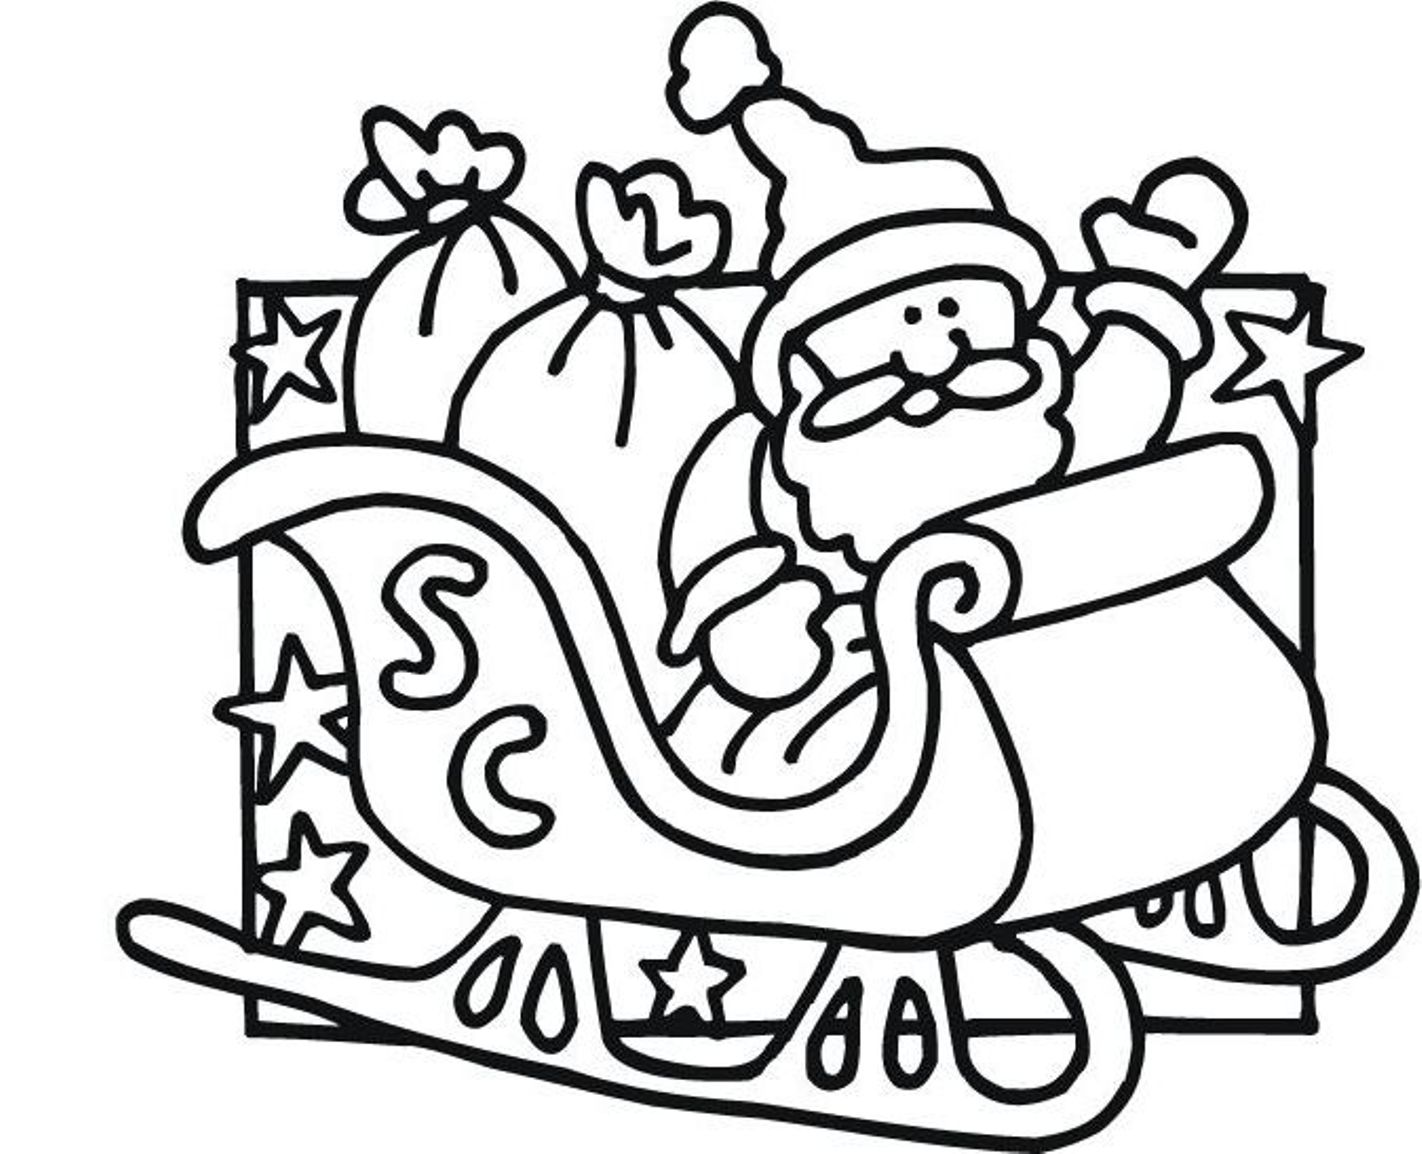 Santa Claus Coloring Pages Free Printables At Getcolorings